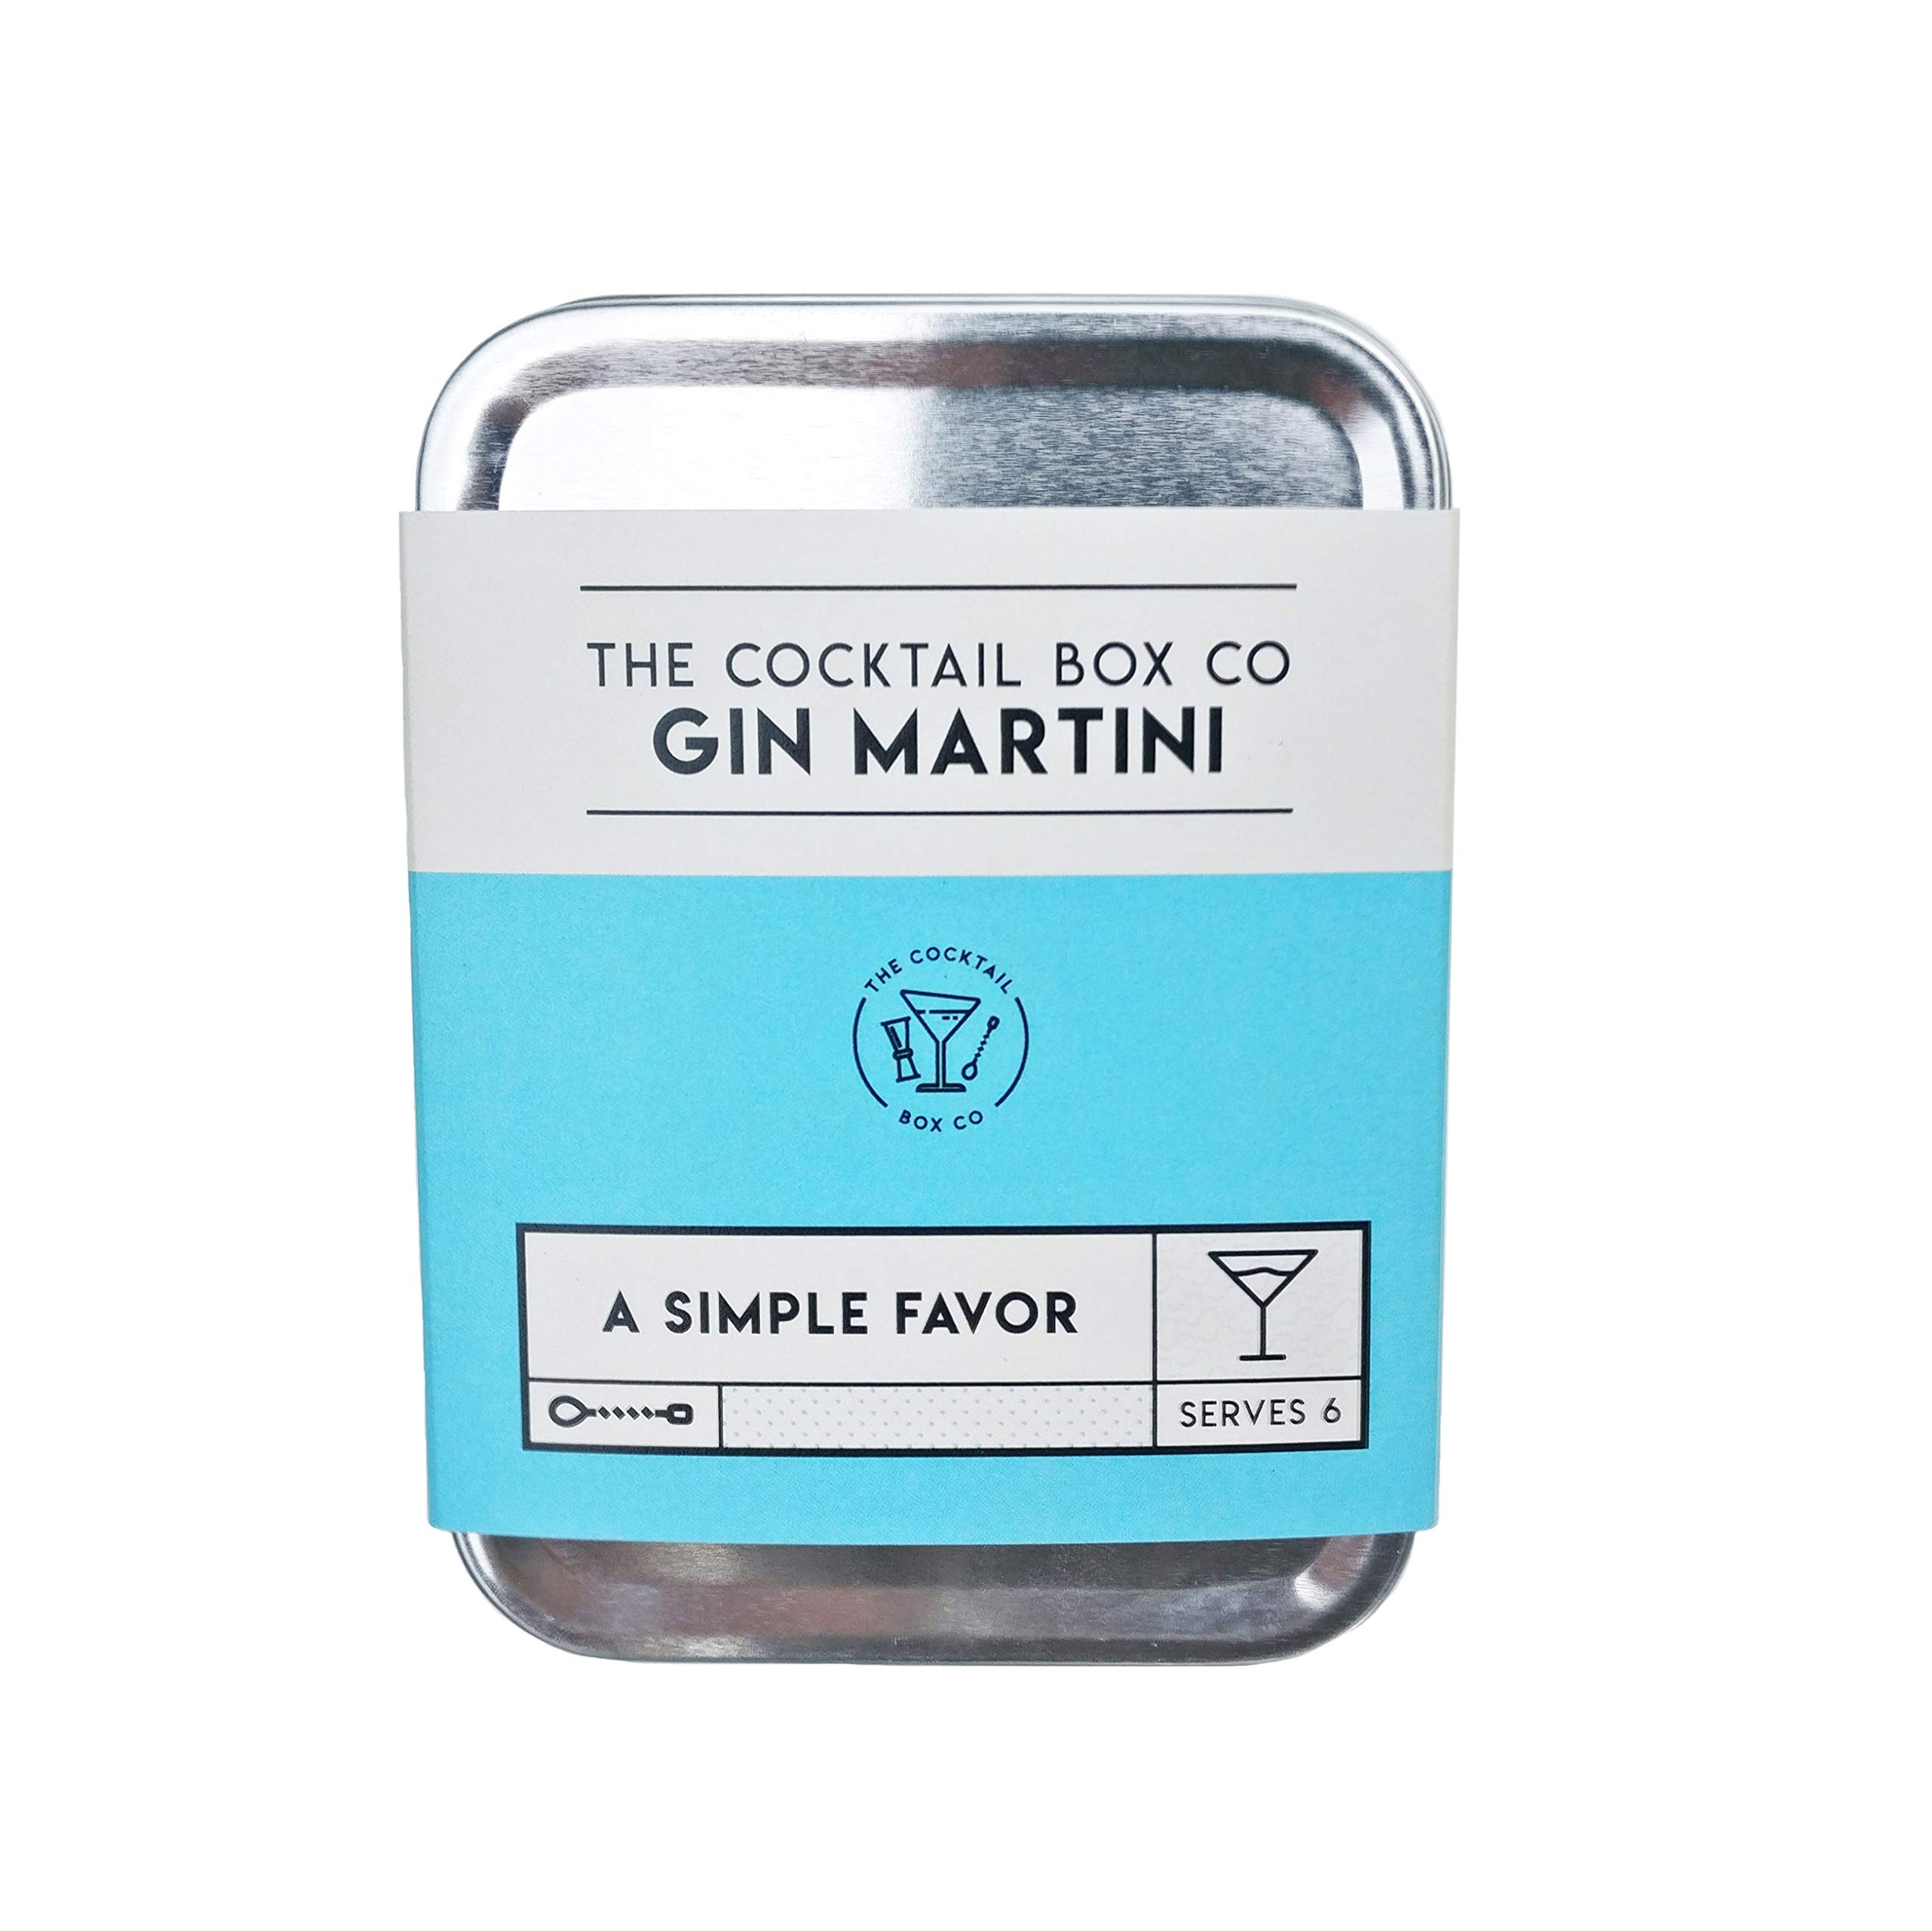 Premium Cocktail Kit - Limited Edition Gin Martini - Inspired by The Movie 'A Simple Favor' - Makes 6 Premium Cocktails